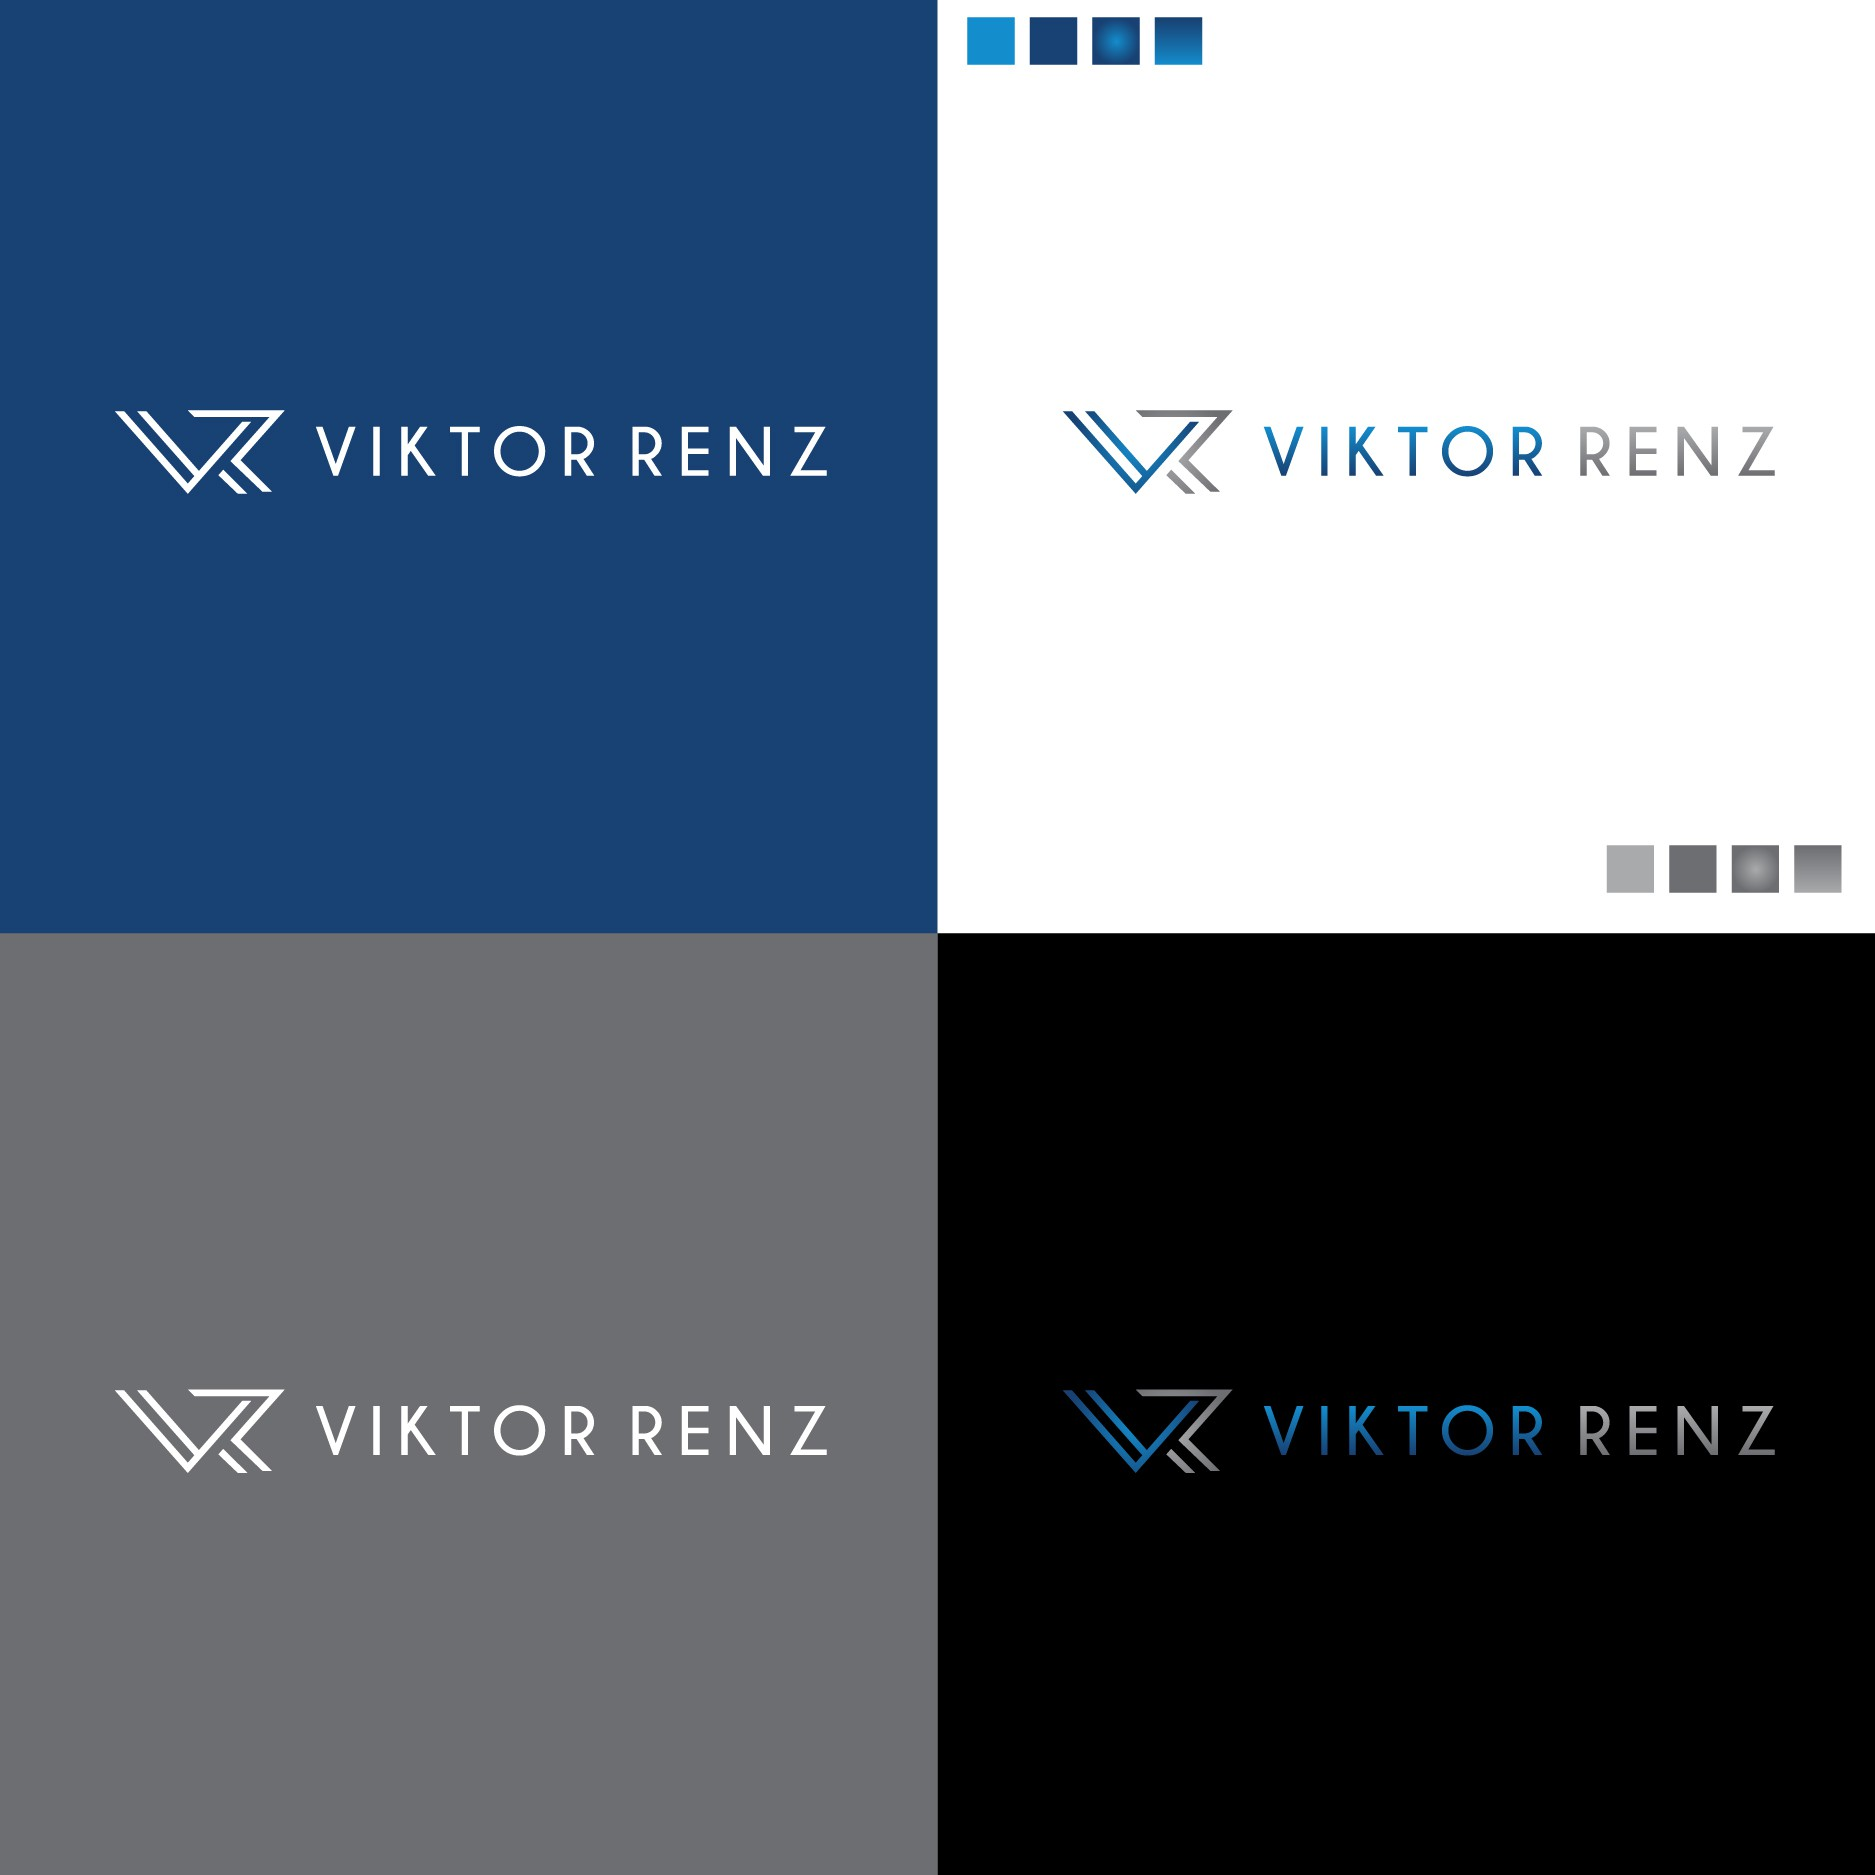 Turning My Name Into A Brand In Financial Consulting